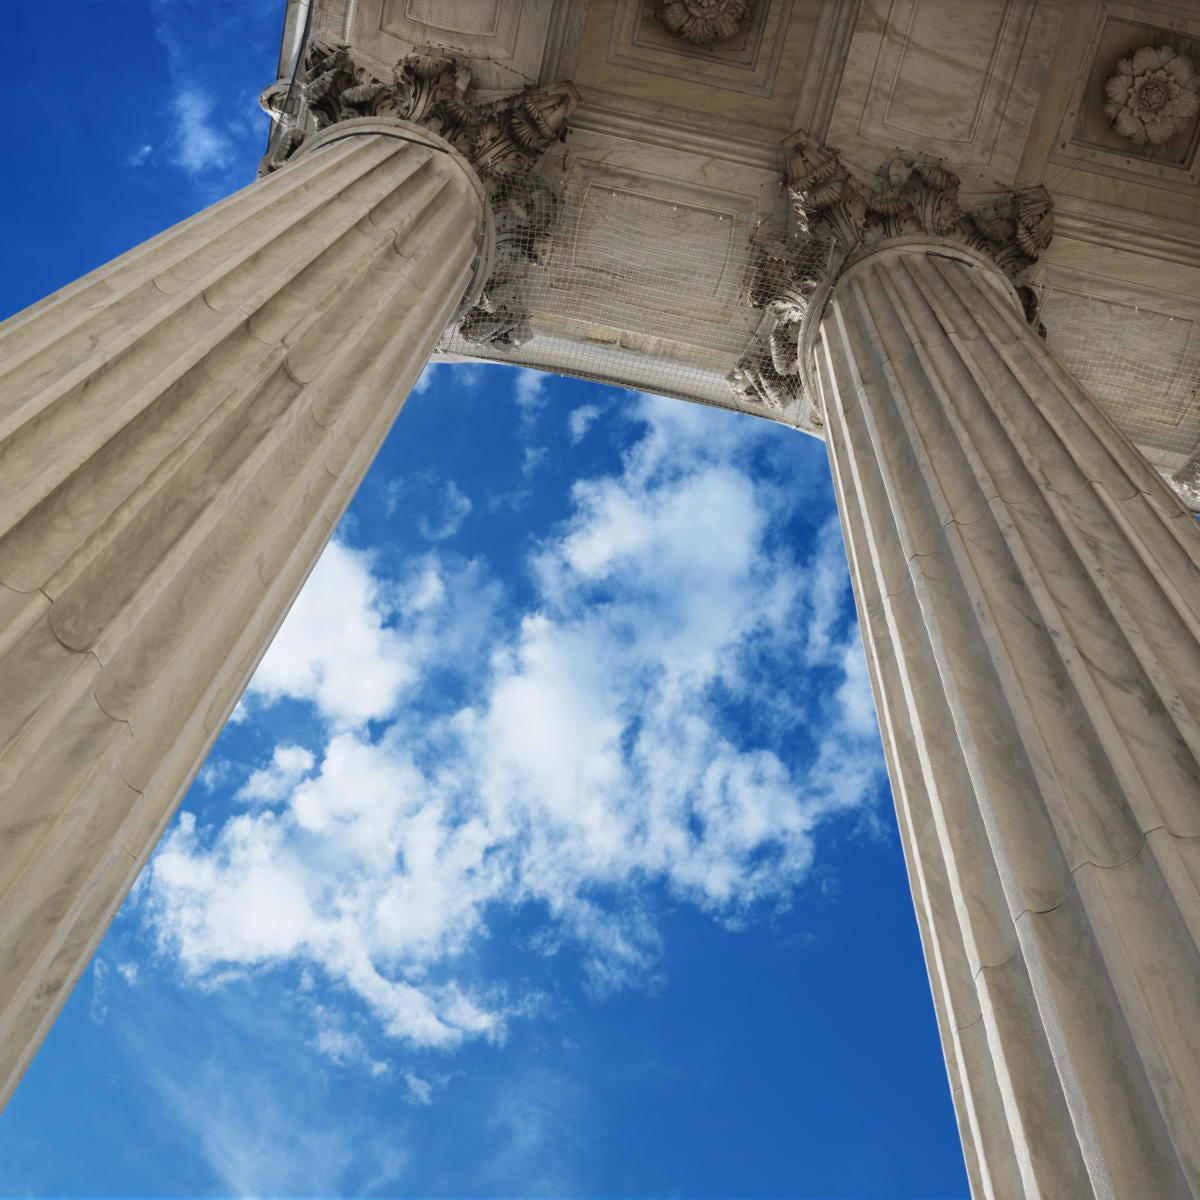 low angle view looking up at blue sky with clouds and columns of supreme court building in washingt